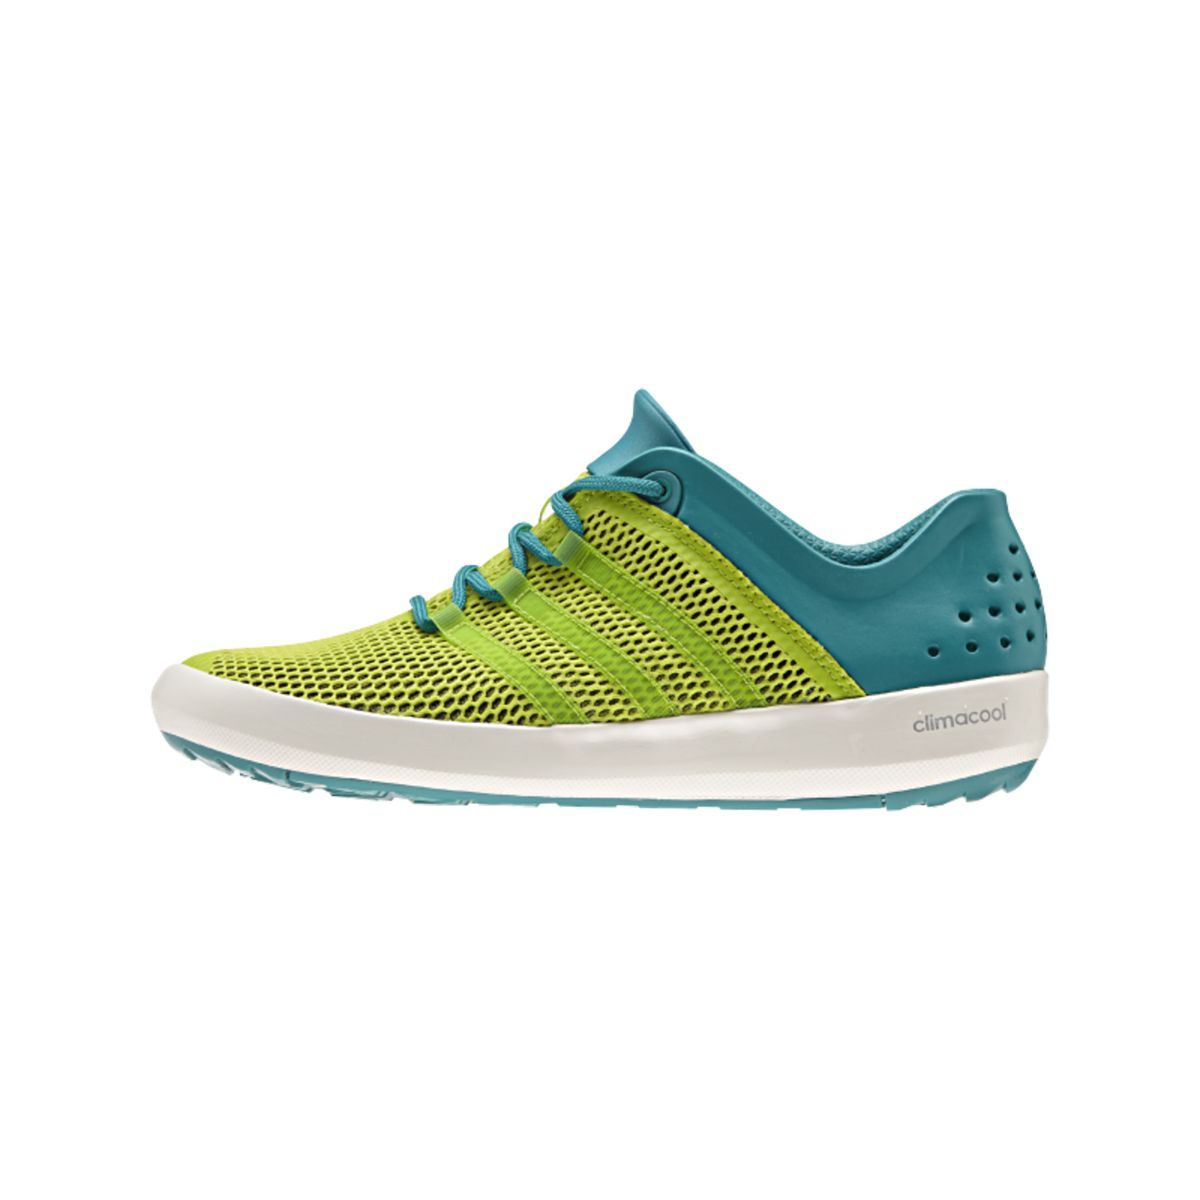 Image Result For Adidas Climacool Boat Pure